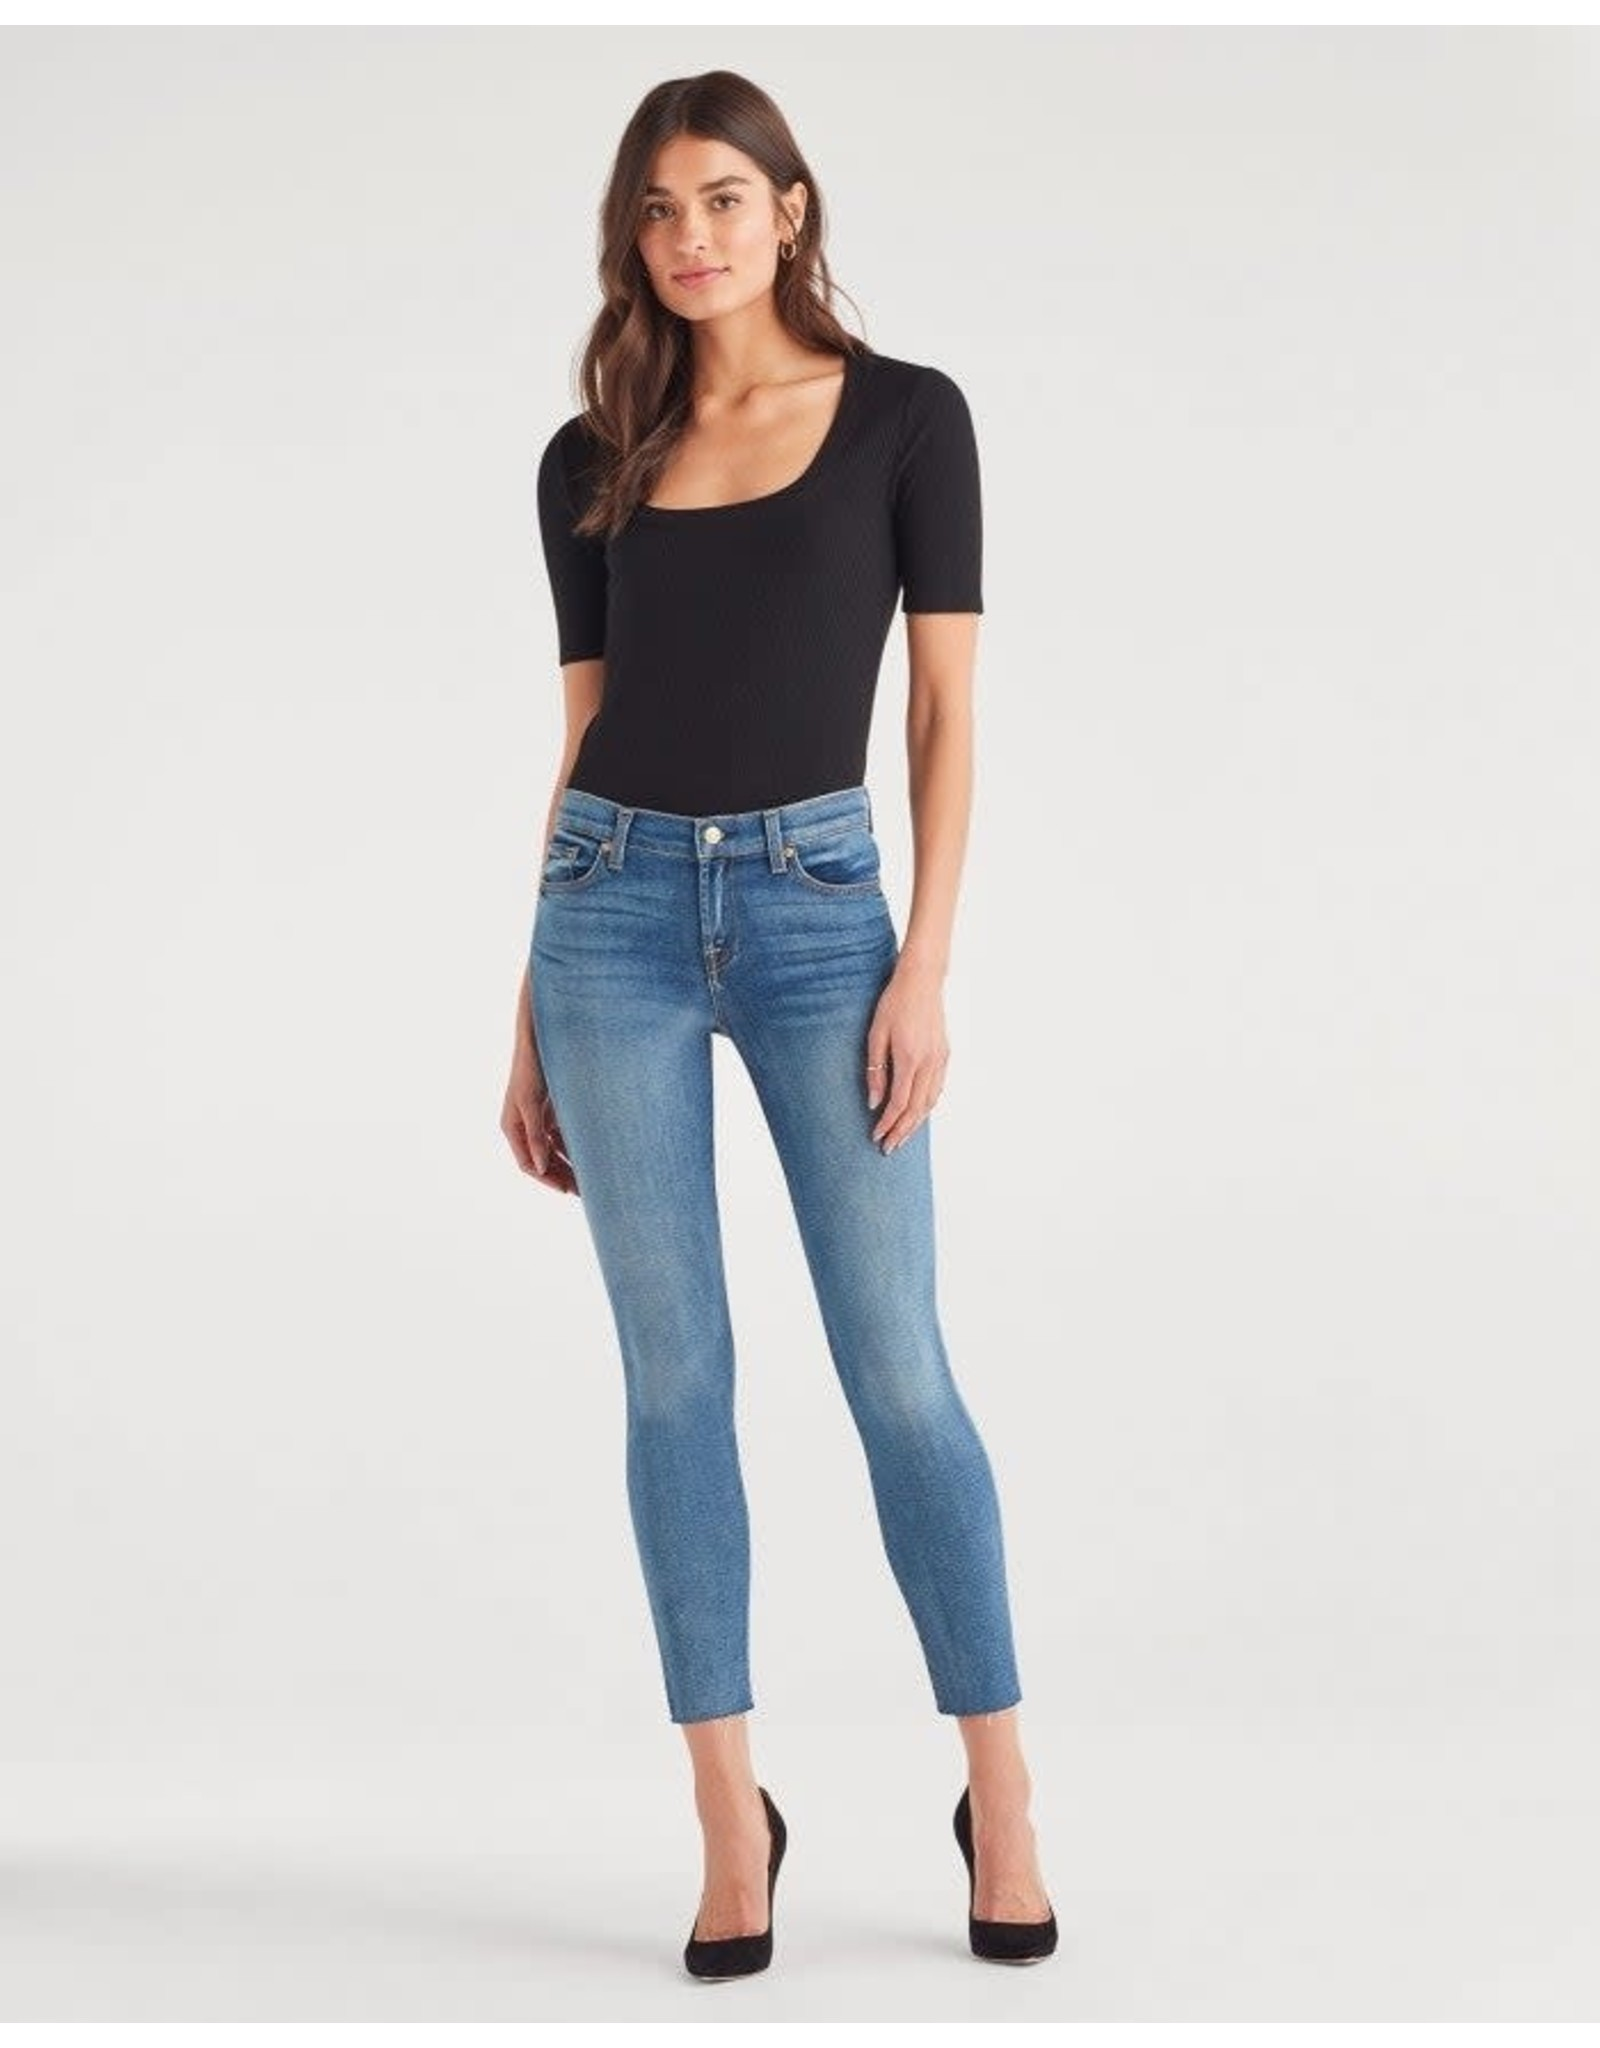 7 For All Mankind 7 For All Mankind The Ankle Skinny with Cut Off Hem